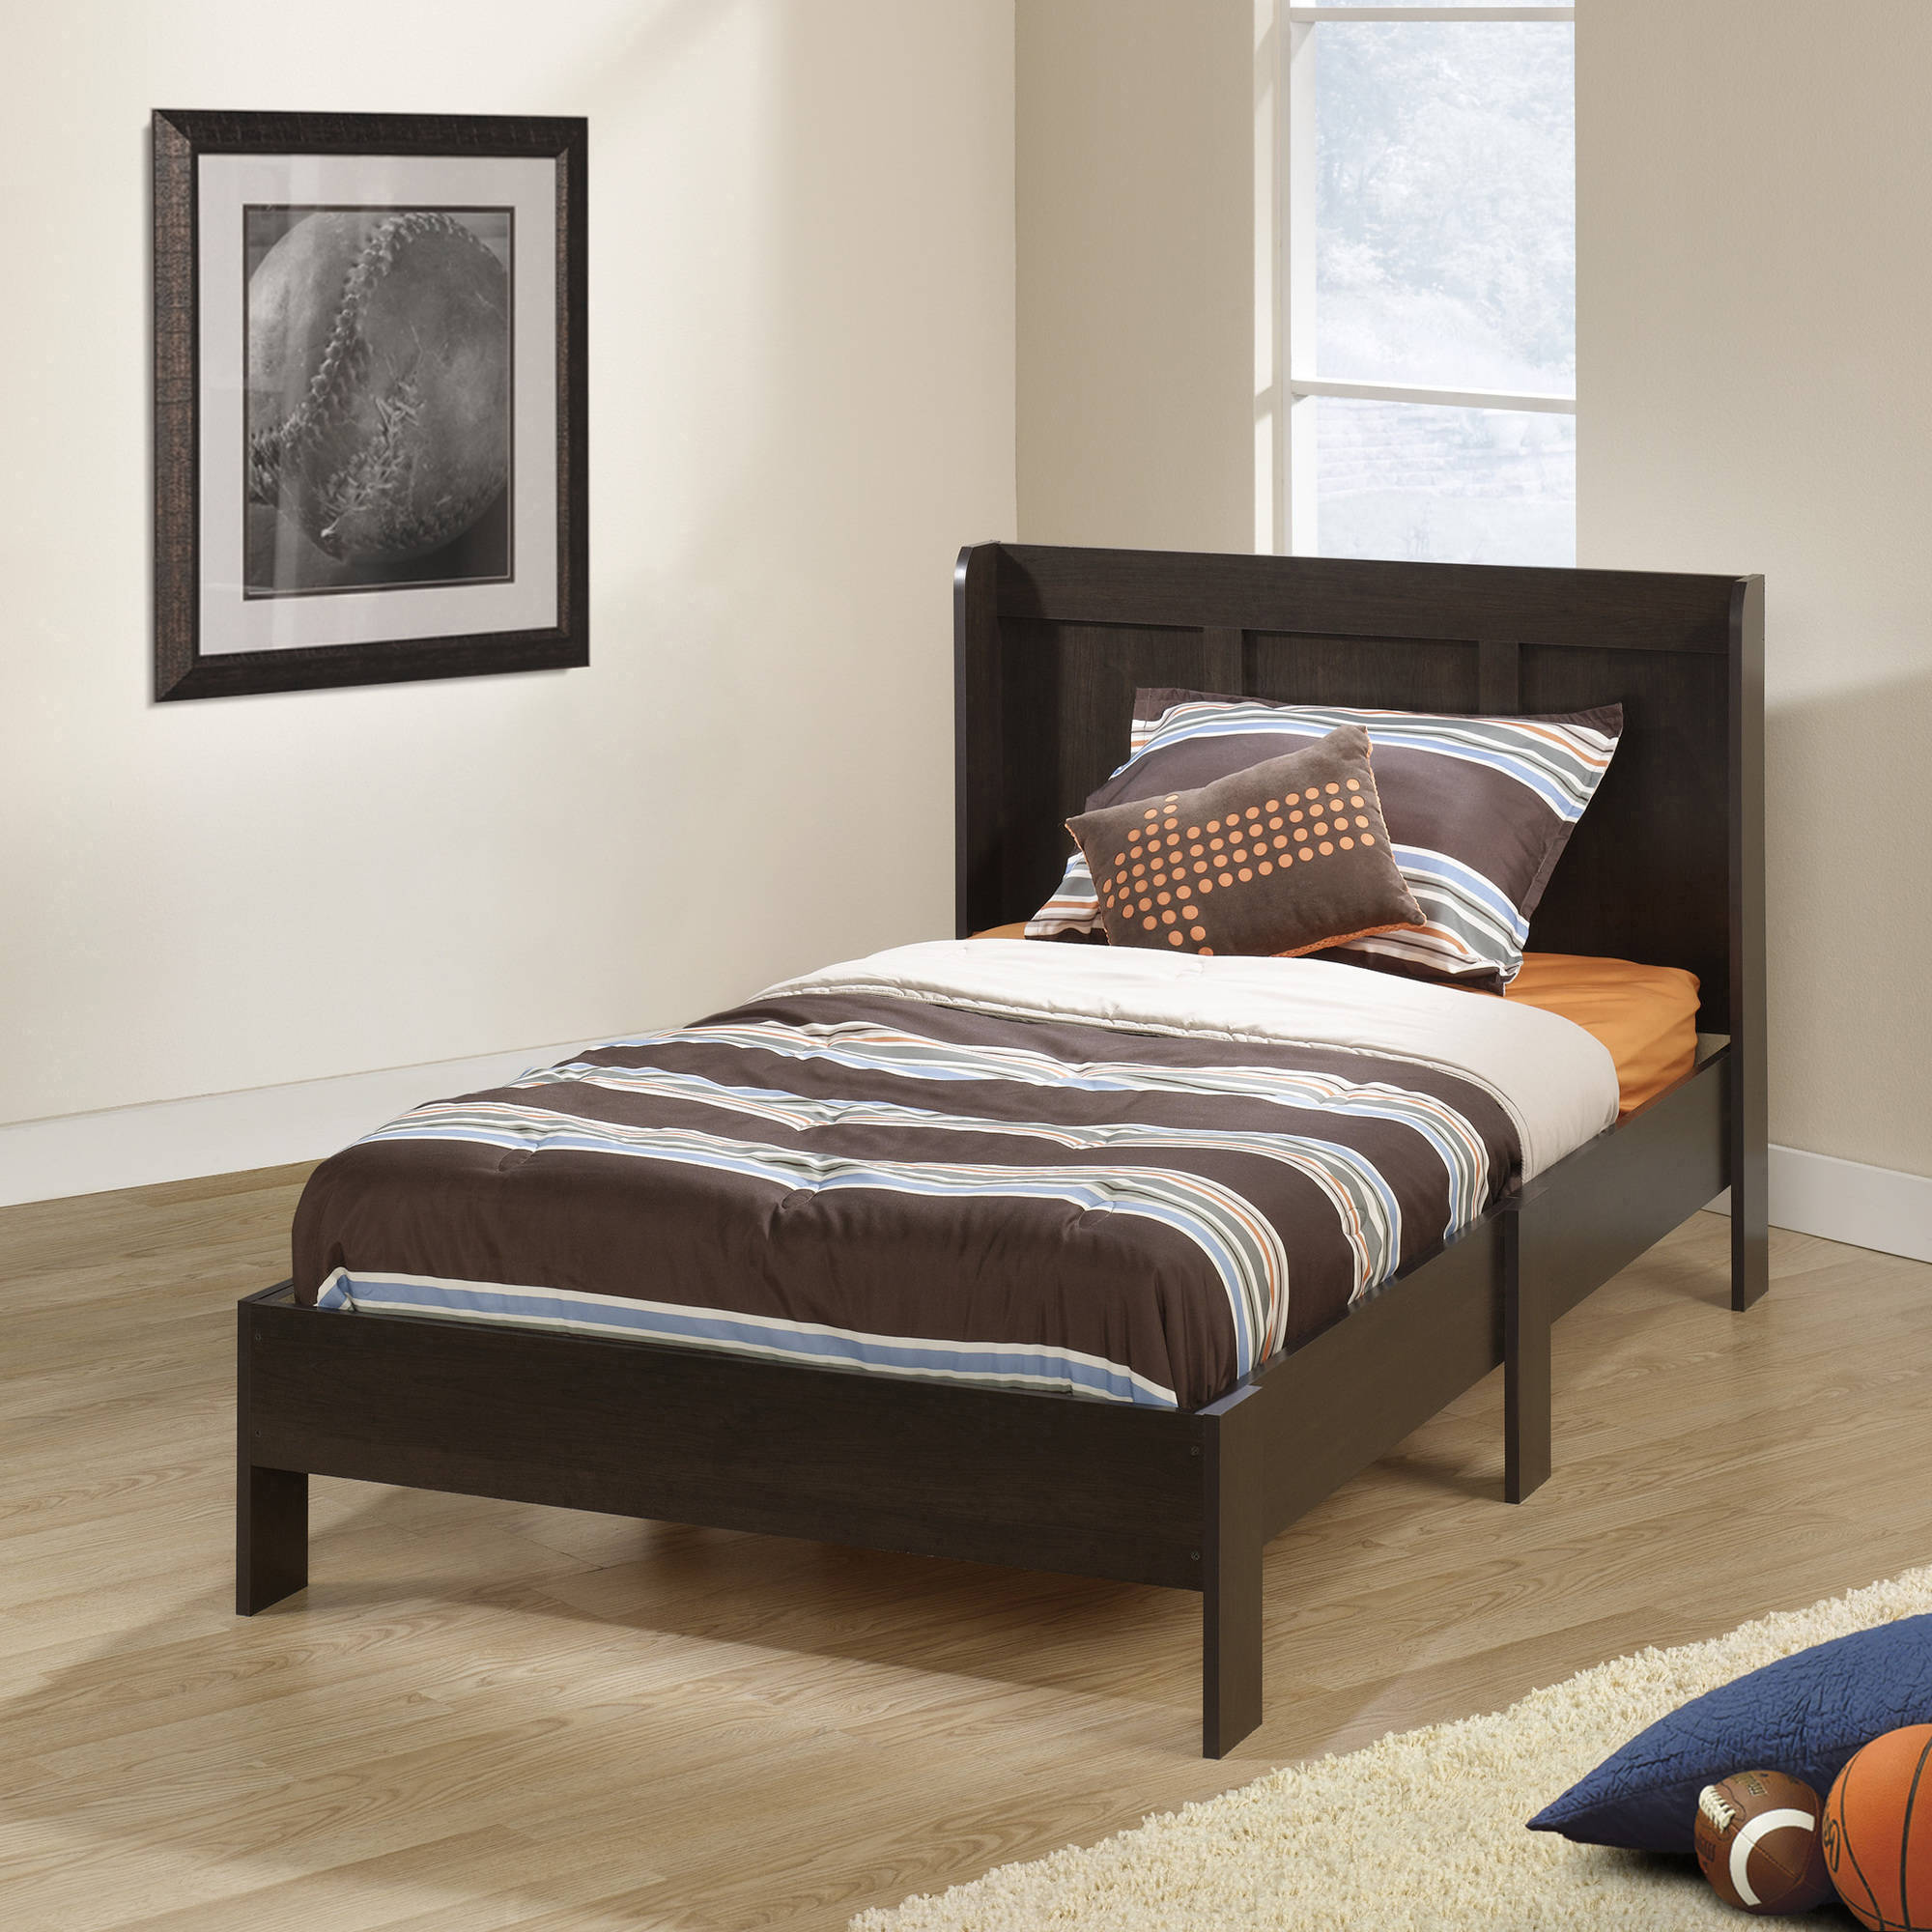 Mainstays Parklane Twin Platform Bed and Headboard, Multiple Finishes - Walmart.com - Mainstays Parklane Twin Platform Bed And Headboard, Multiple